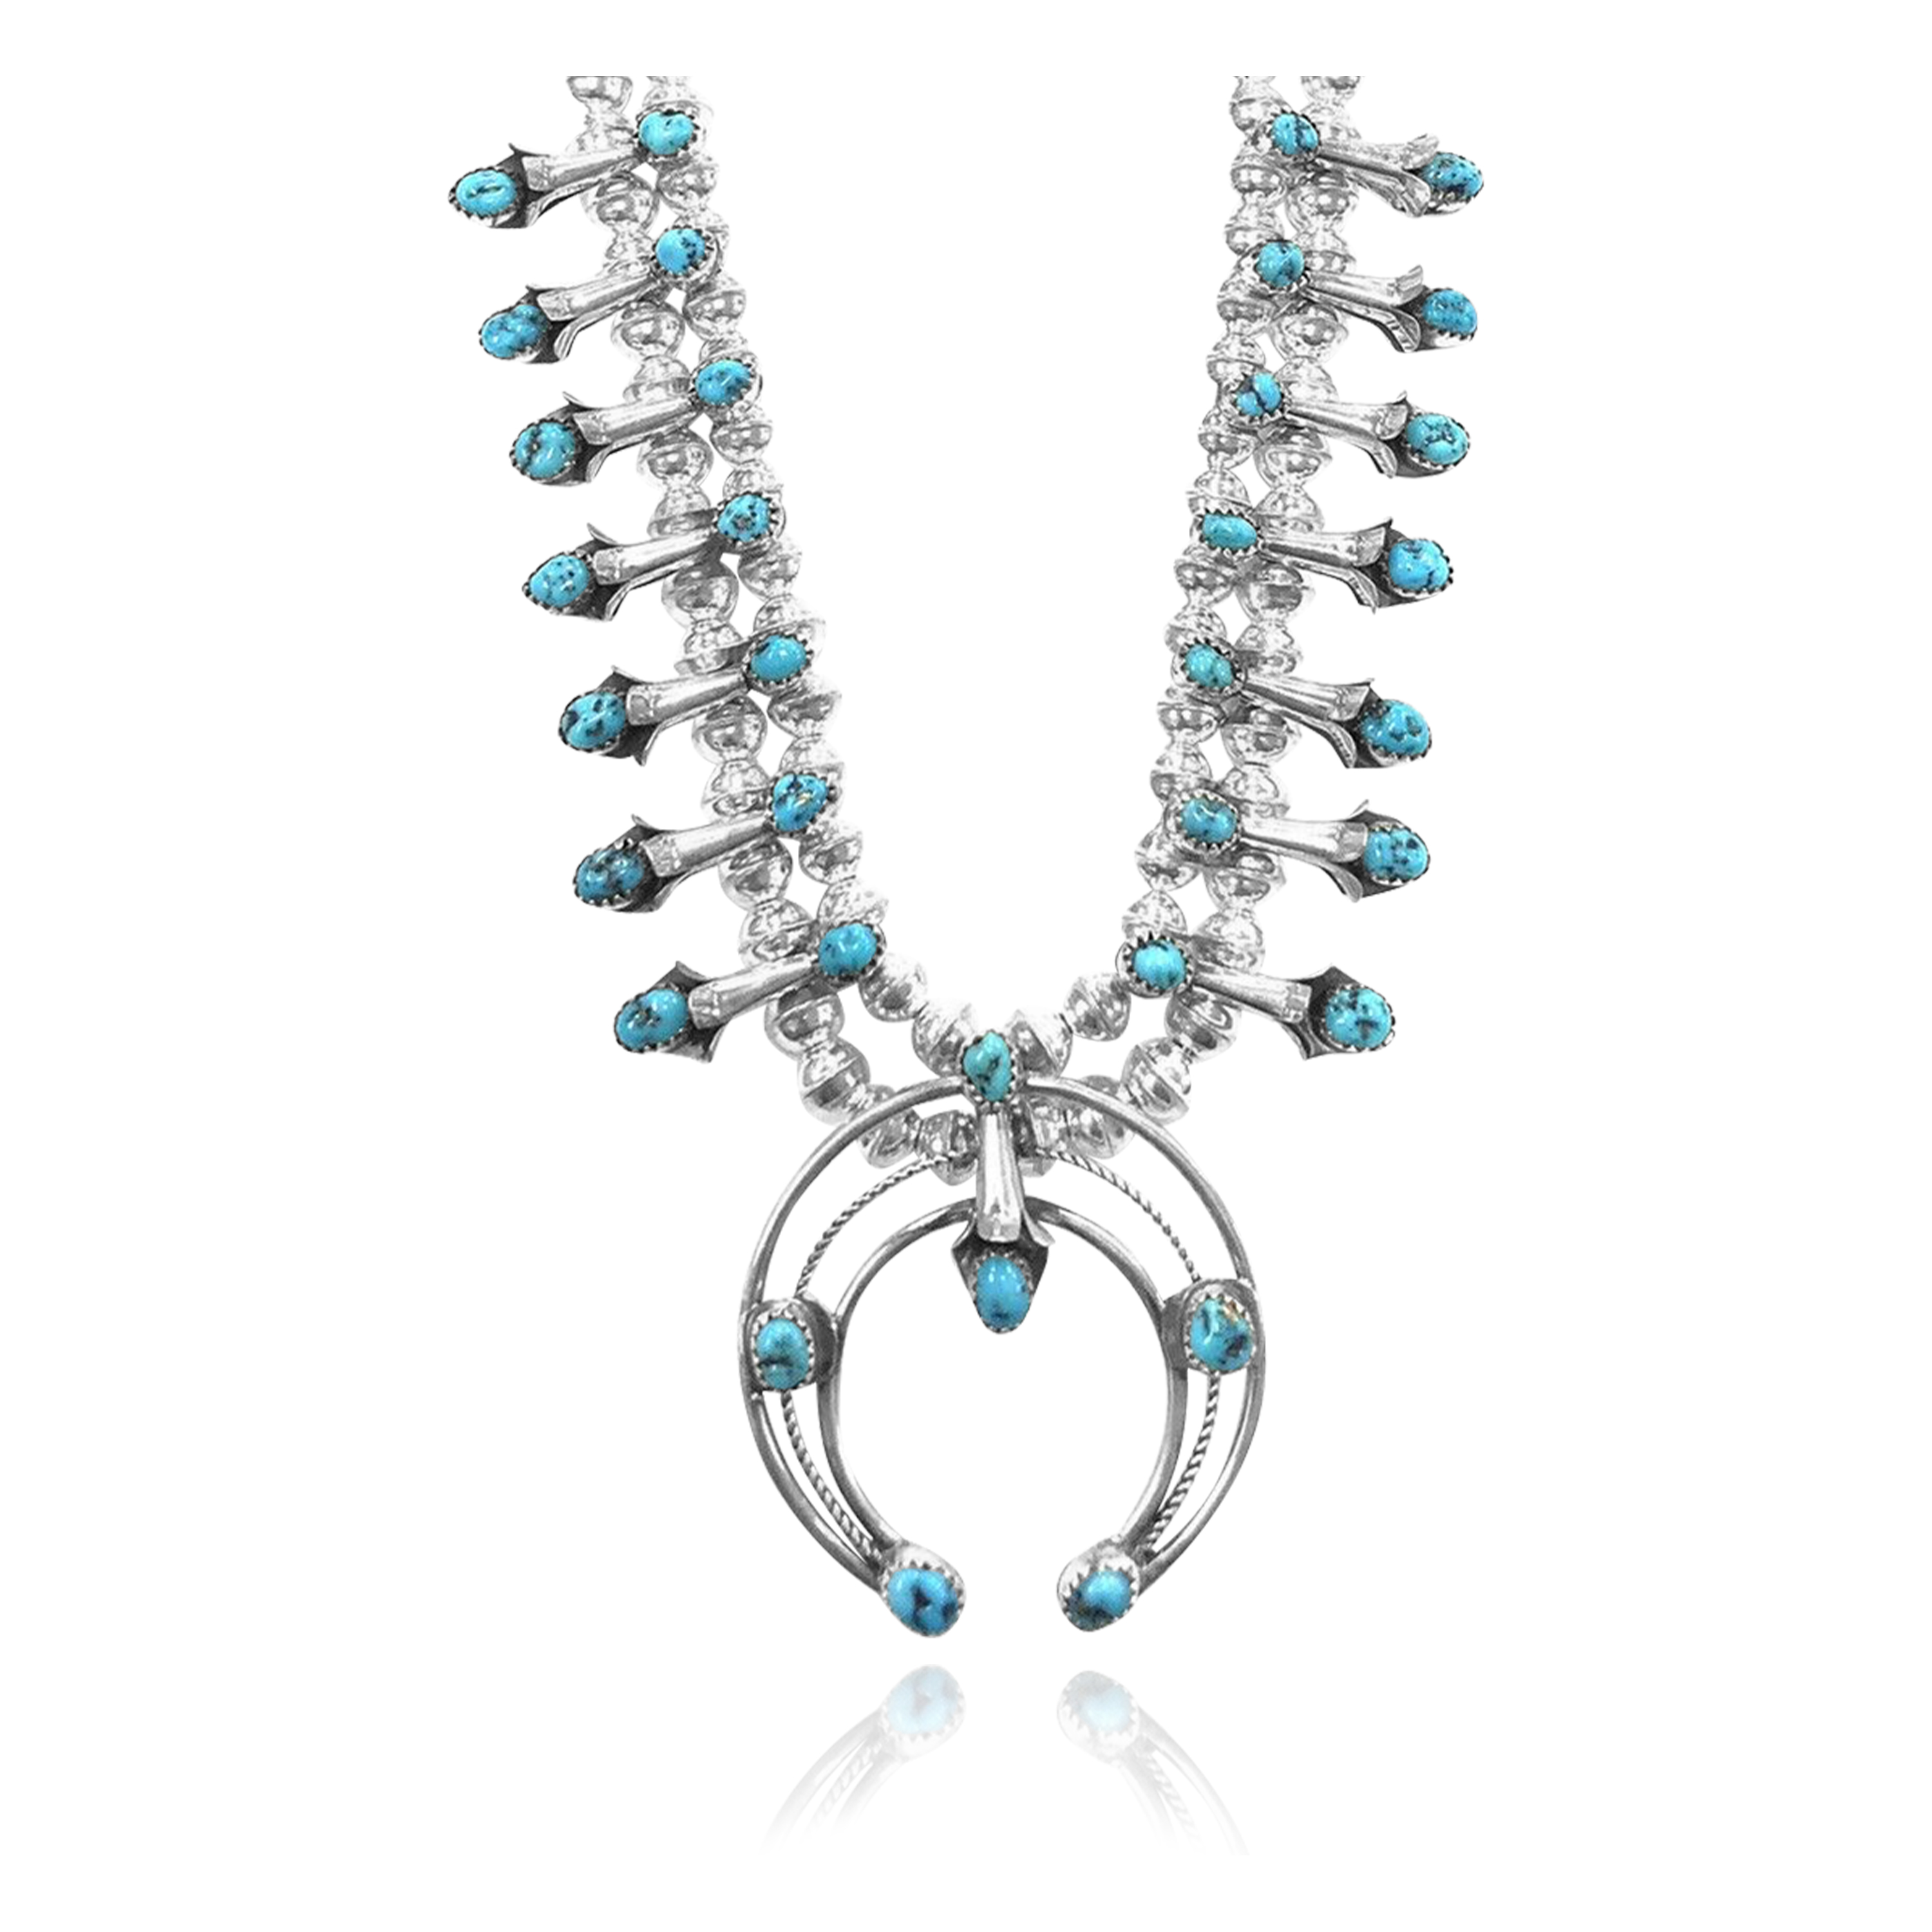 Squash Blossom .925 Sterling Silver Certified Authentic Navajo Native American Natural Turquoise Necklace 35176